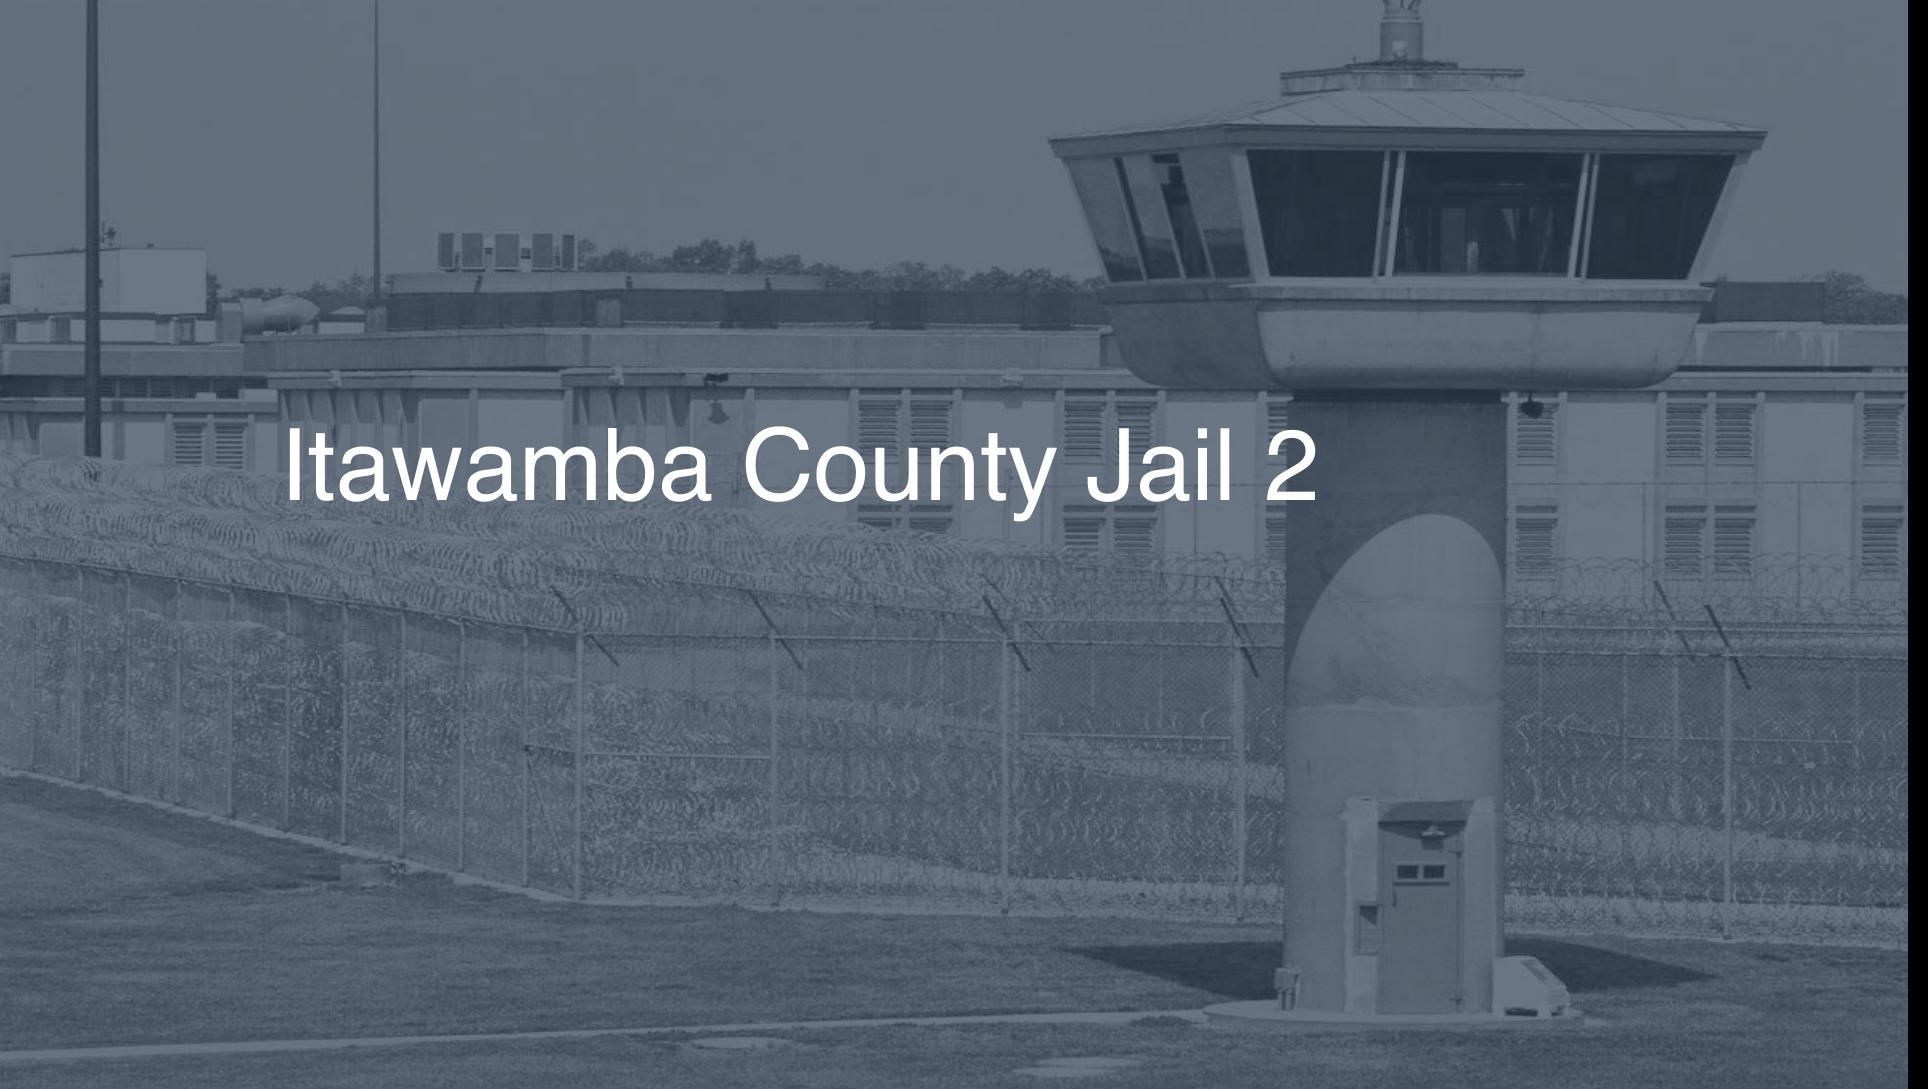 Itawamba County Jail correctional facility picture